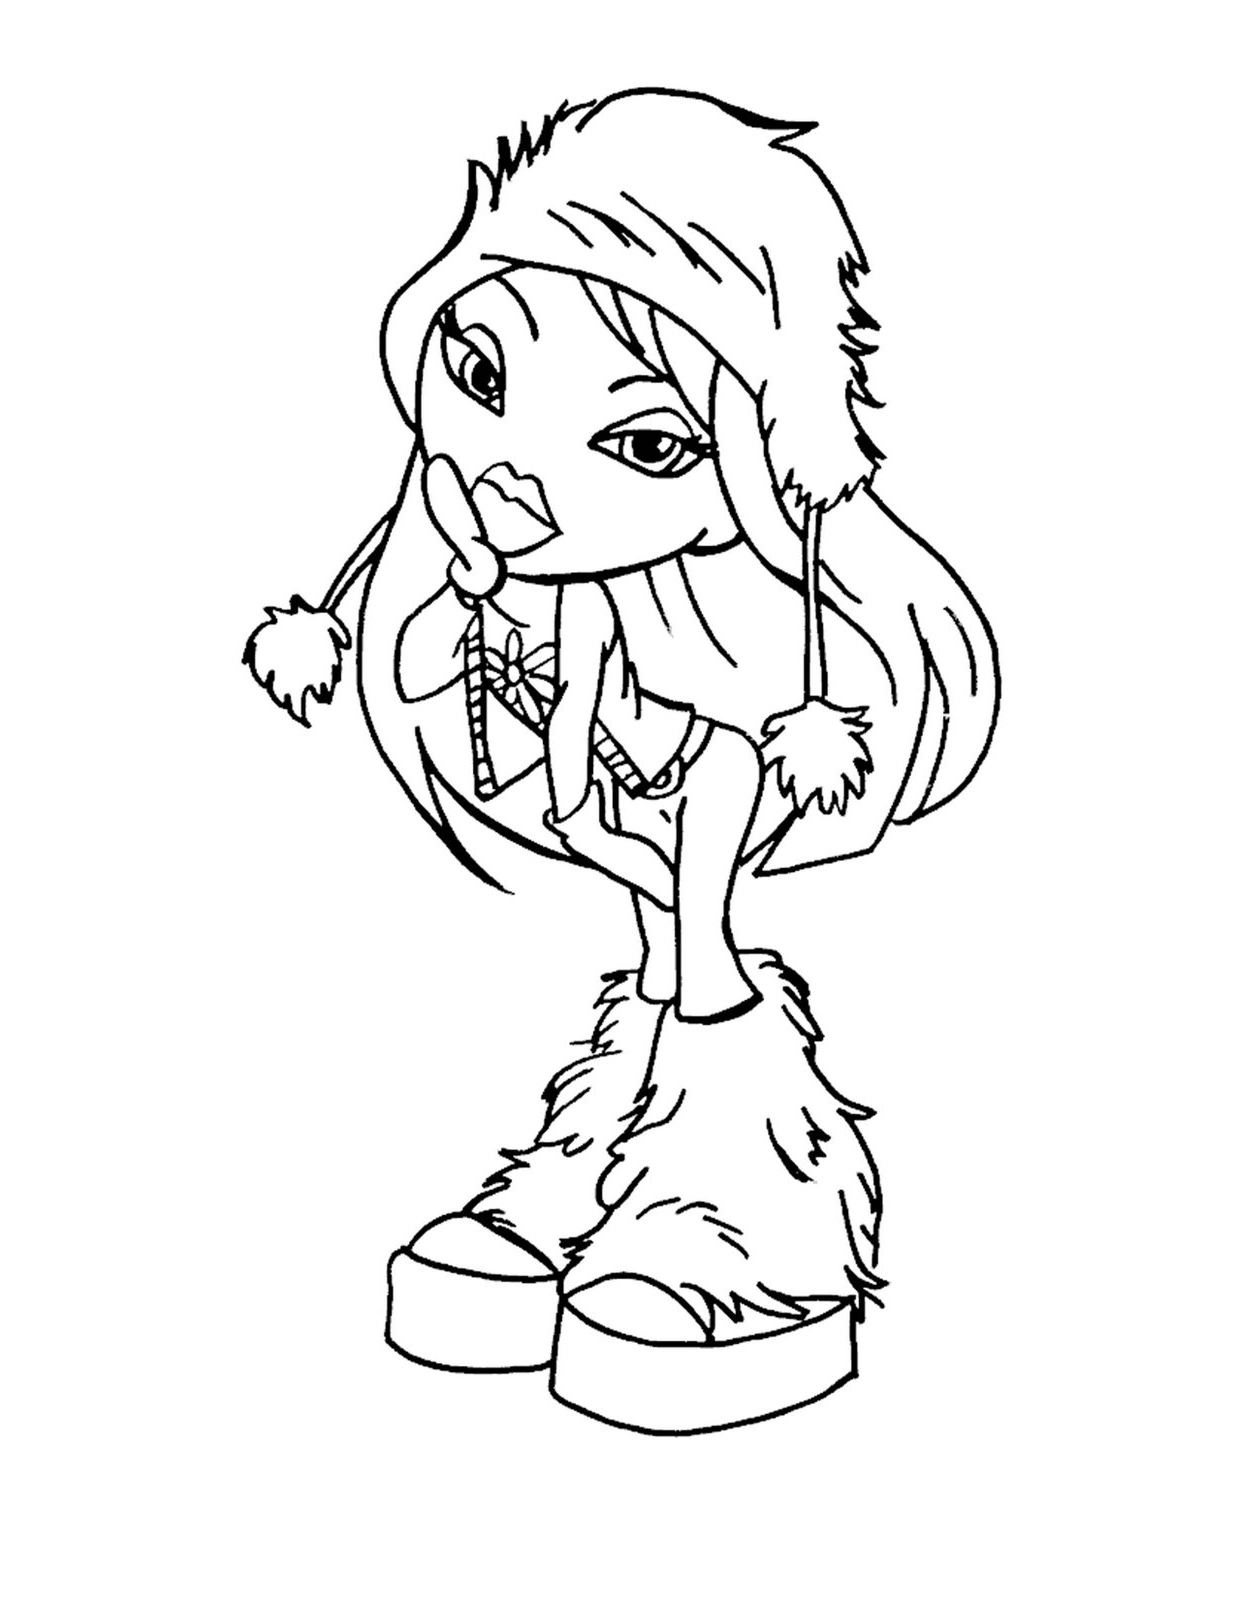 Bratz coloring picture | 1600x1236